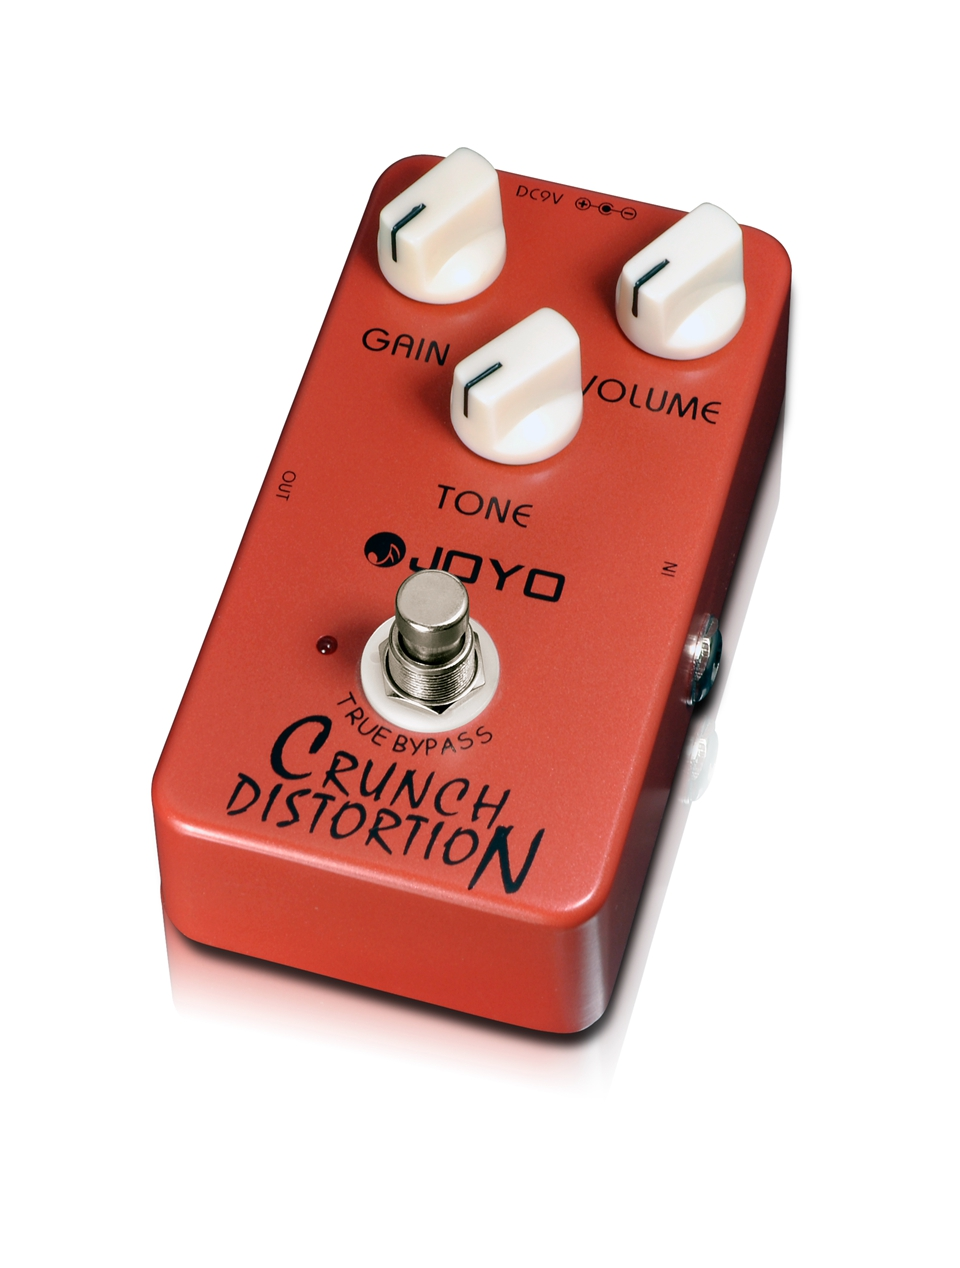 joyo jf 03 crunch distortion guitar effect pedal british classic rock distortion great response. Black Bedroom Furniture Sets. Home Design Ideas